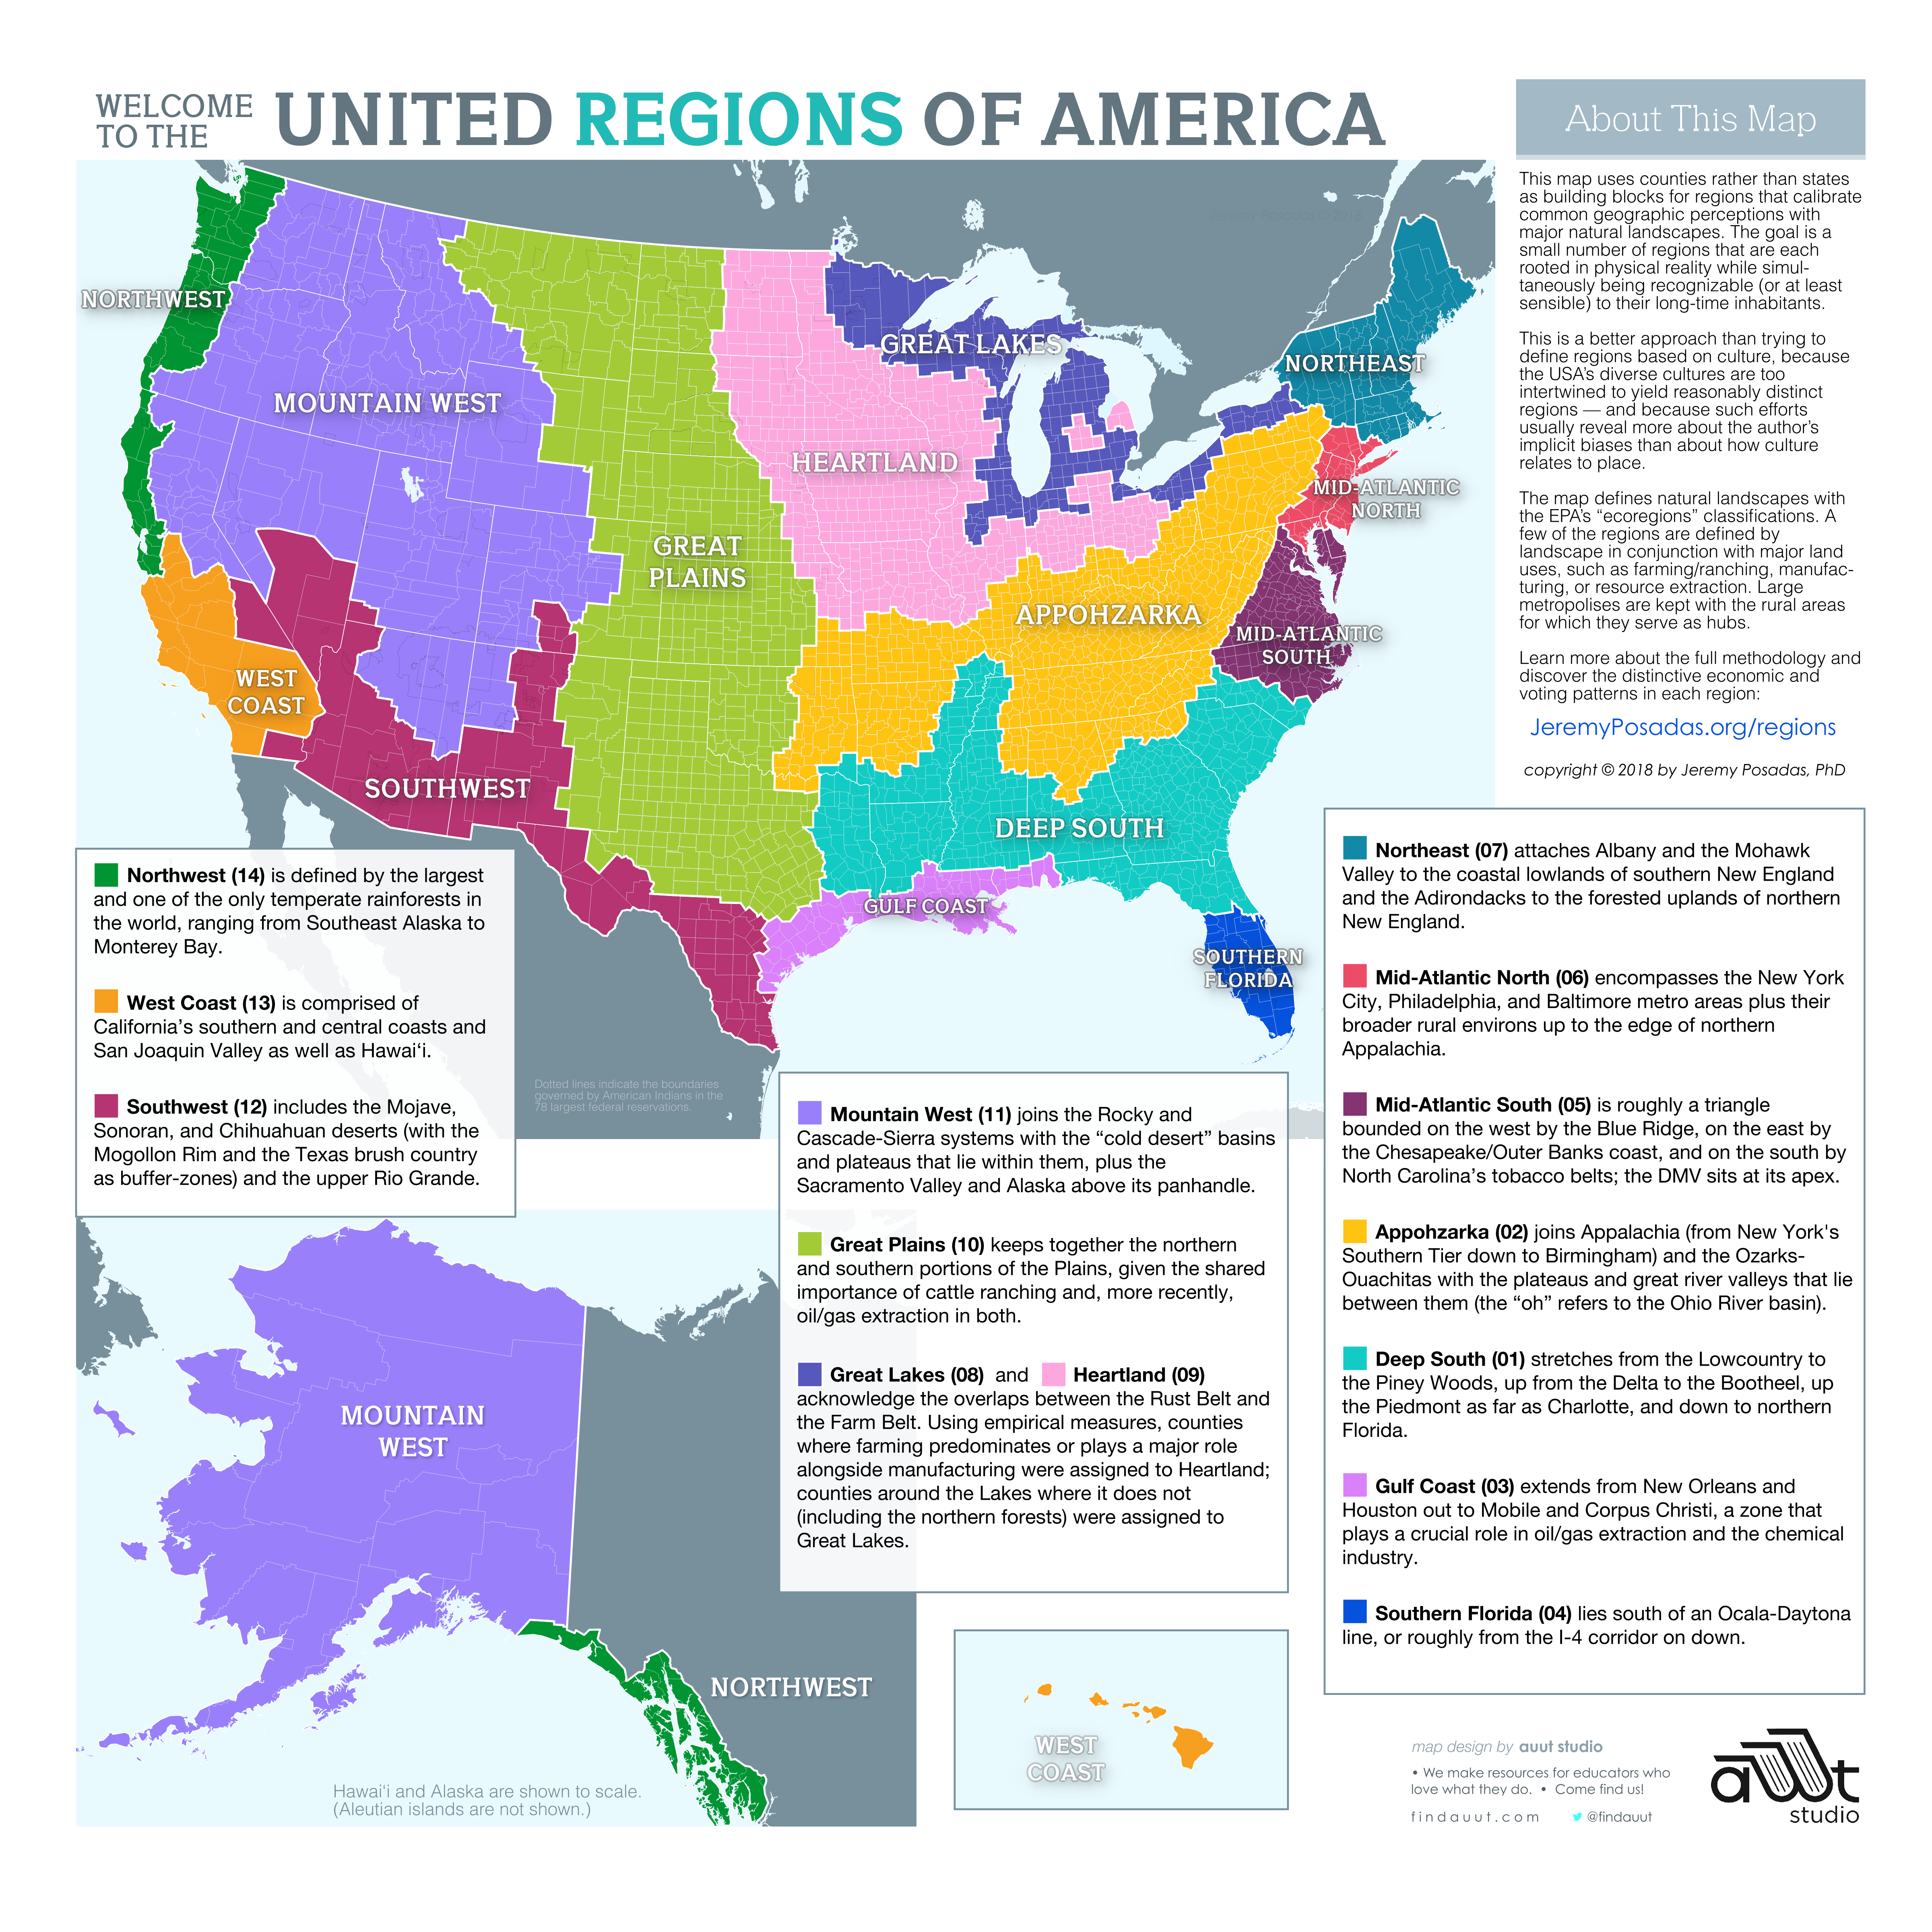 Map Of America 2050.New Mega Region Map Apartment Home Living General U S Page